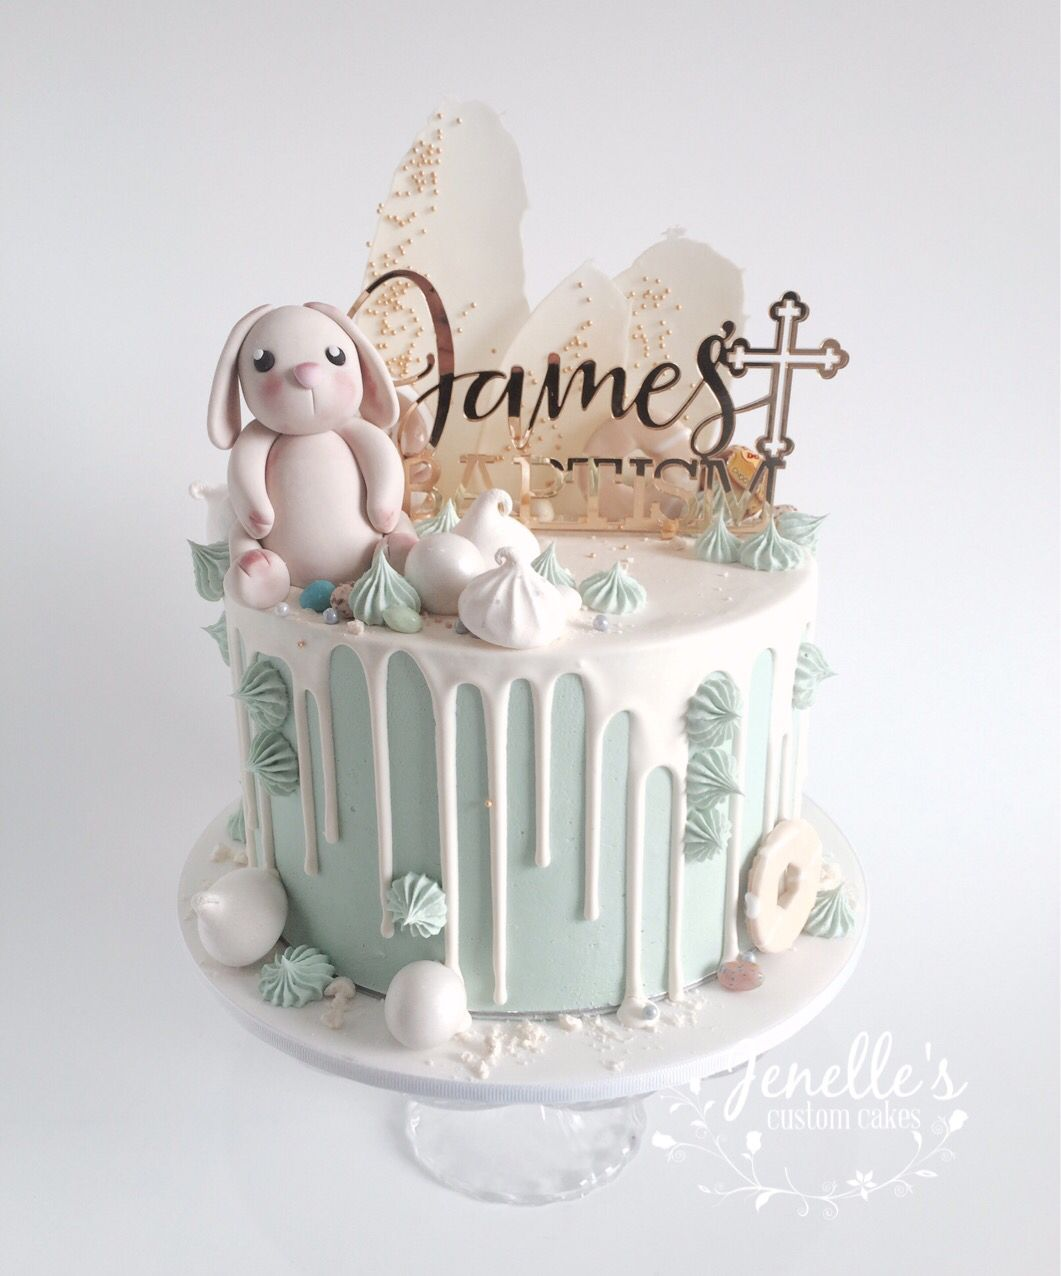 Green Drip Cake For James Baptism By Jenelle S Custom